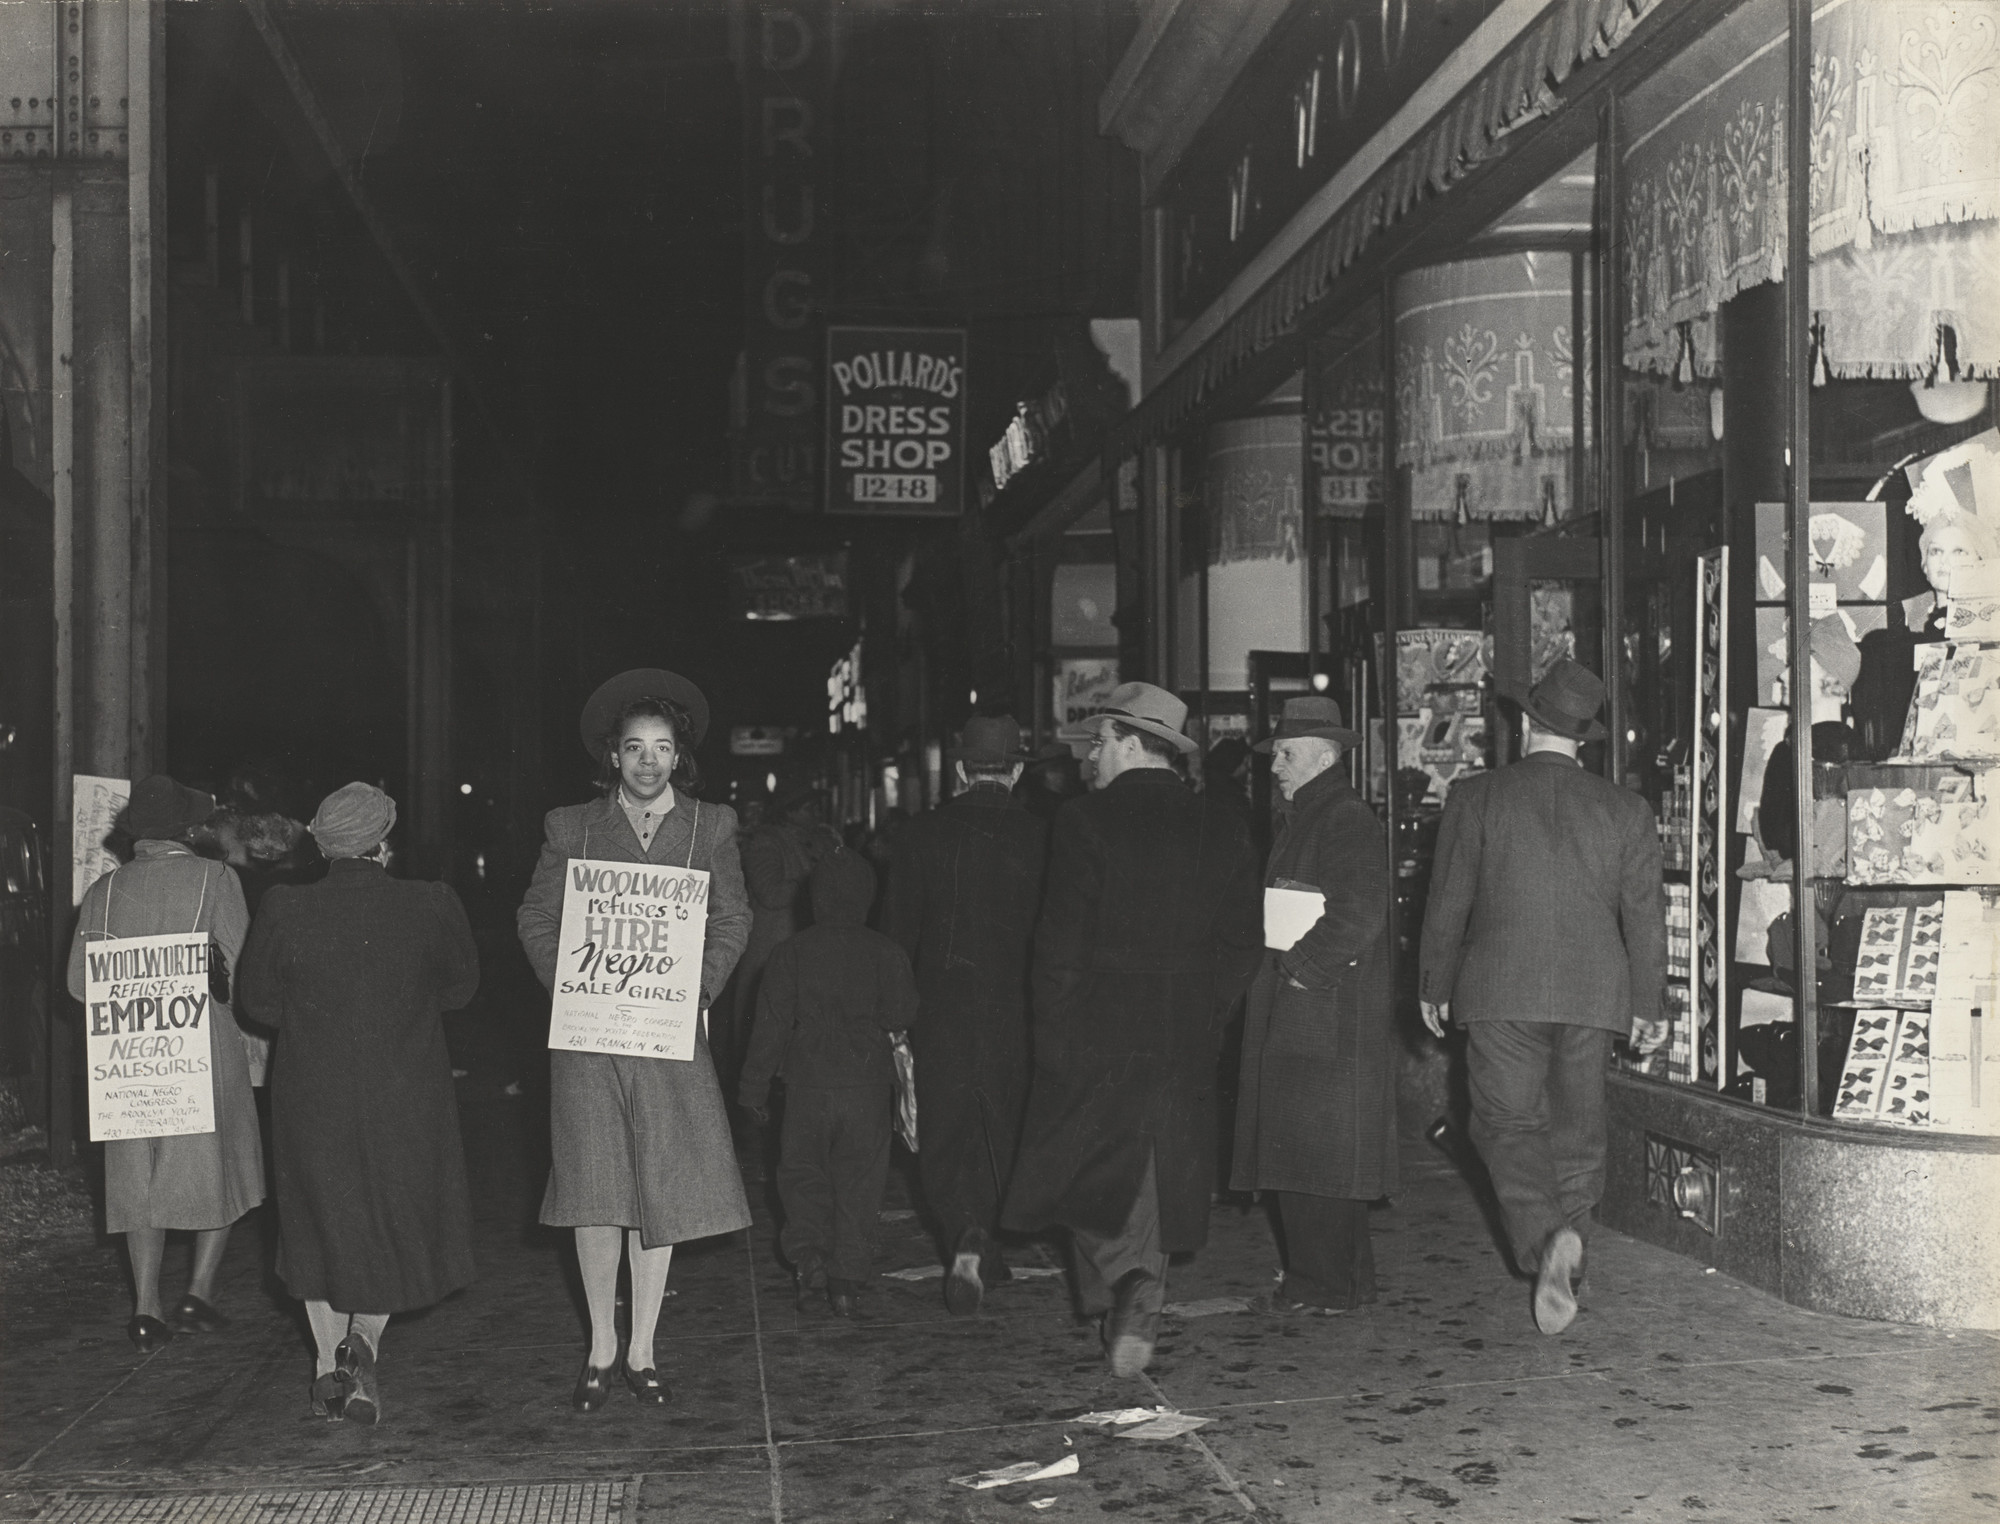 Joseph Schwartz. Does Discriminate, First Black Women to Picket Chain for Jobs, Brooklyn, New York. c. 1940